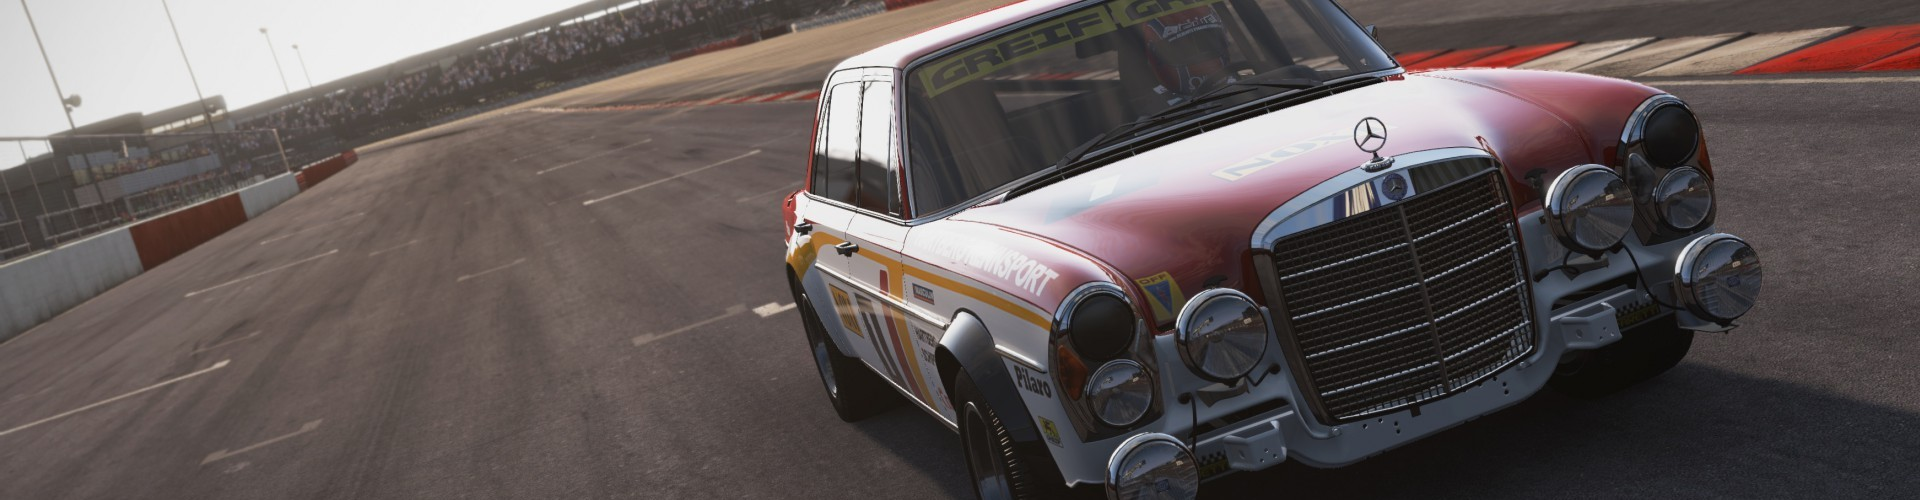 Hardwarefresser Project Cars - Preview-Version im Technik-Test mit Benchmarks